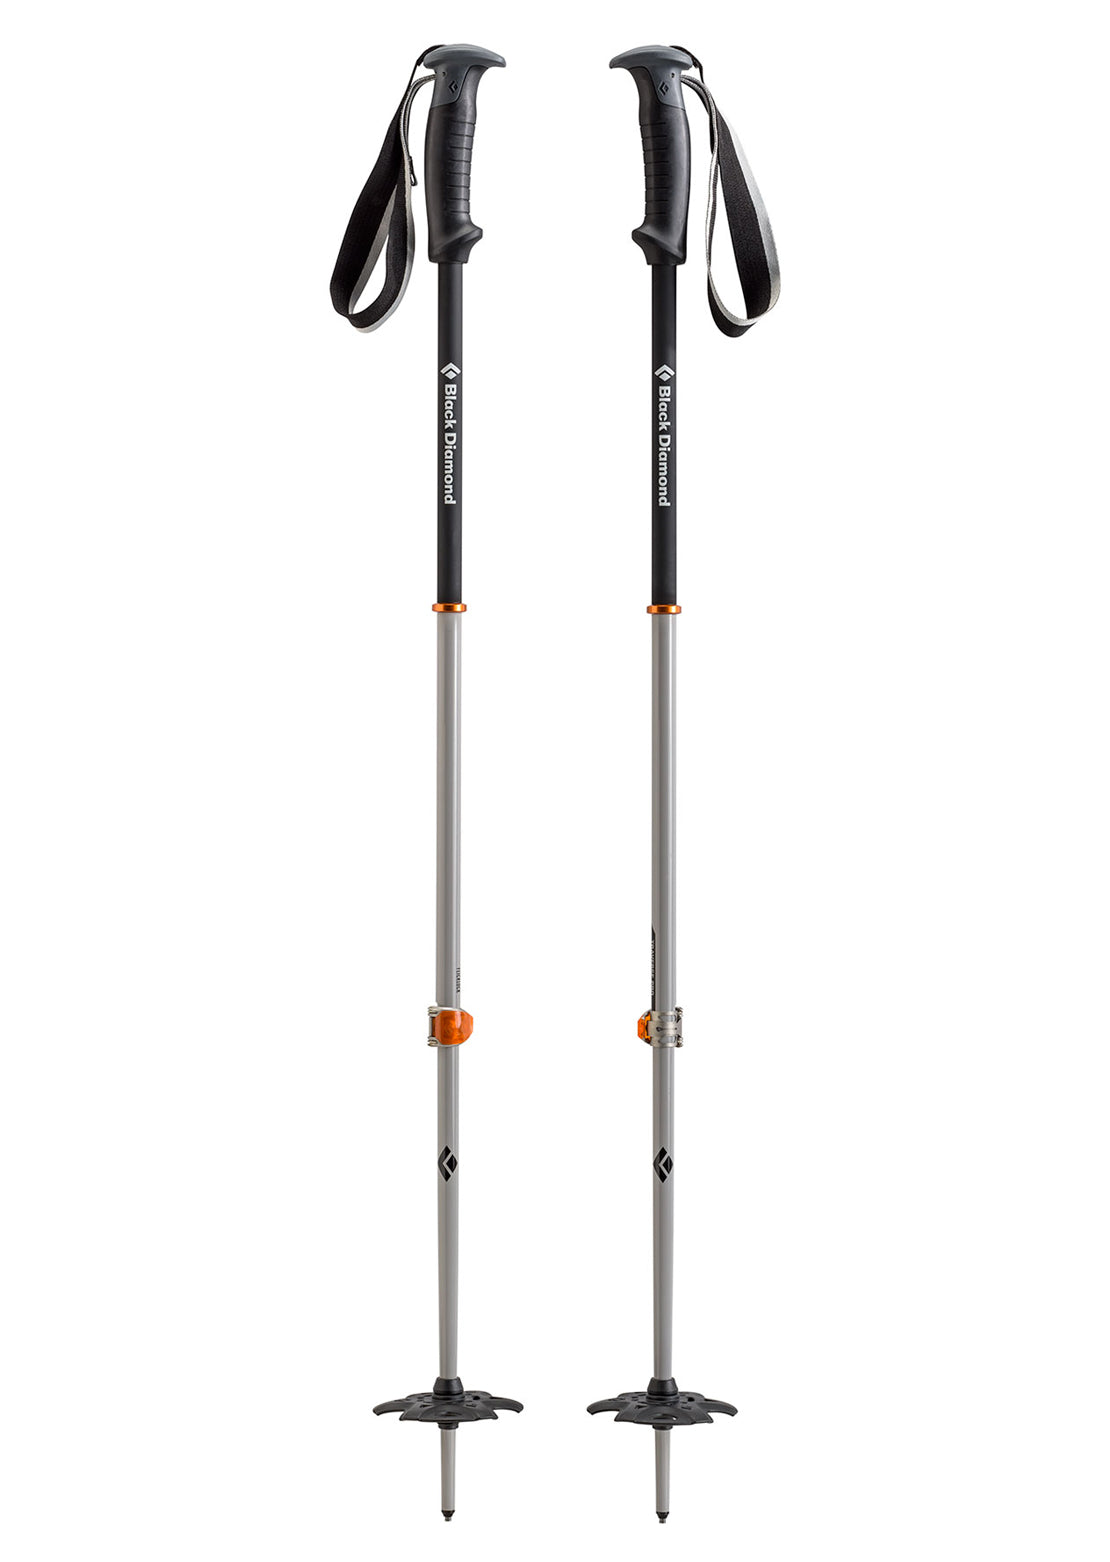 Black Diamond Traverse Pro 155 cm Ski Poles Multi